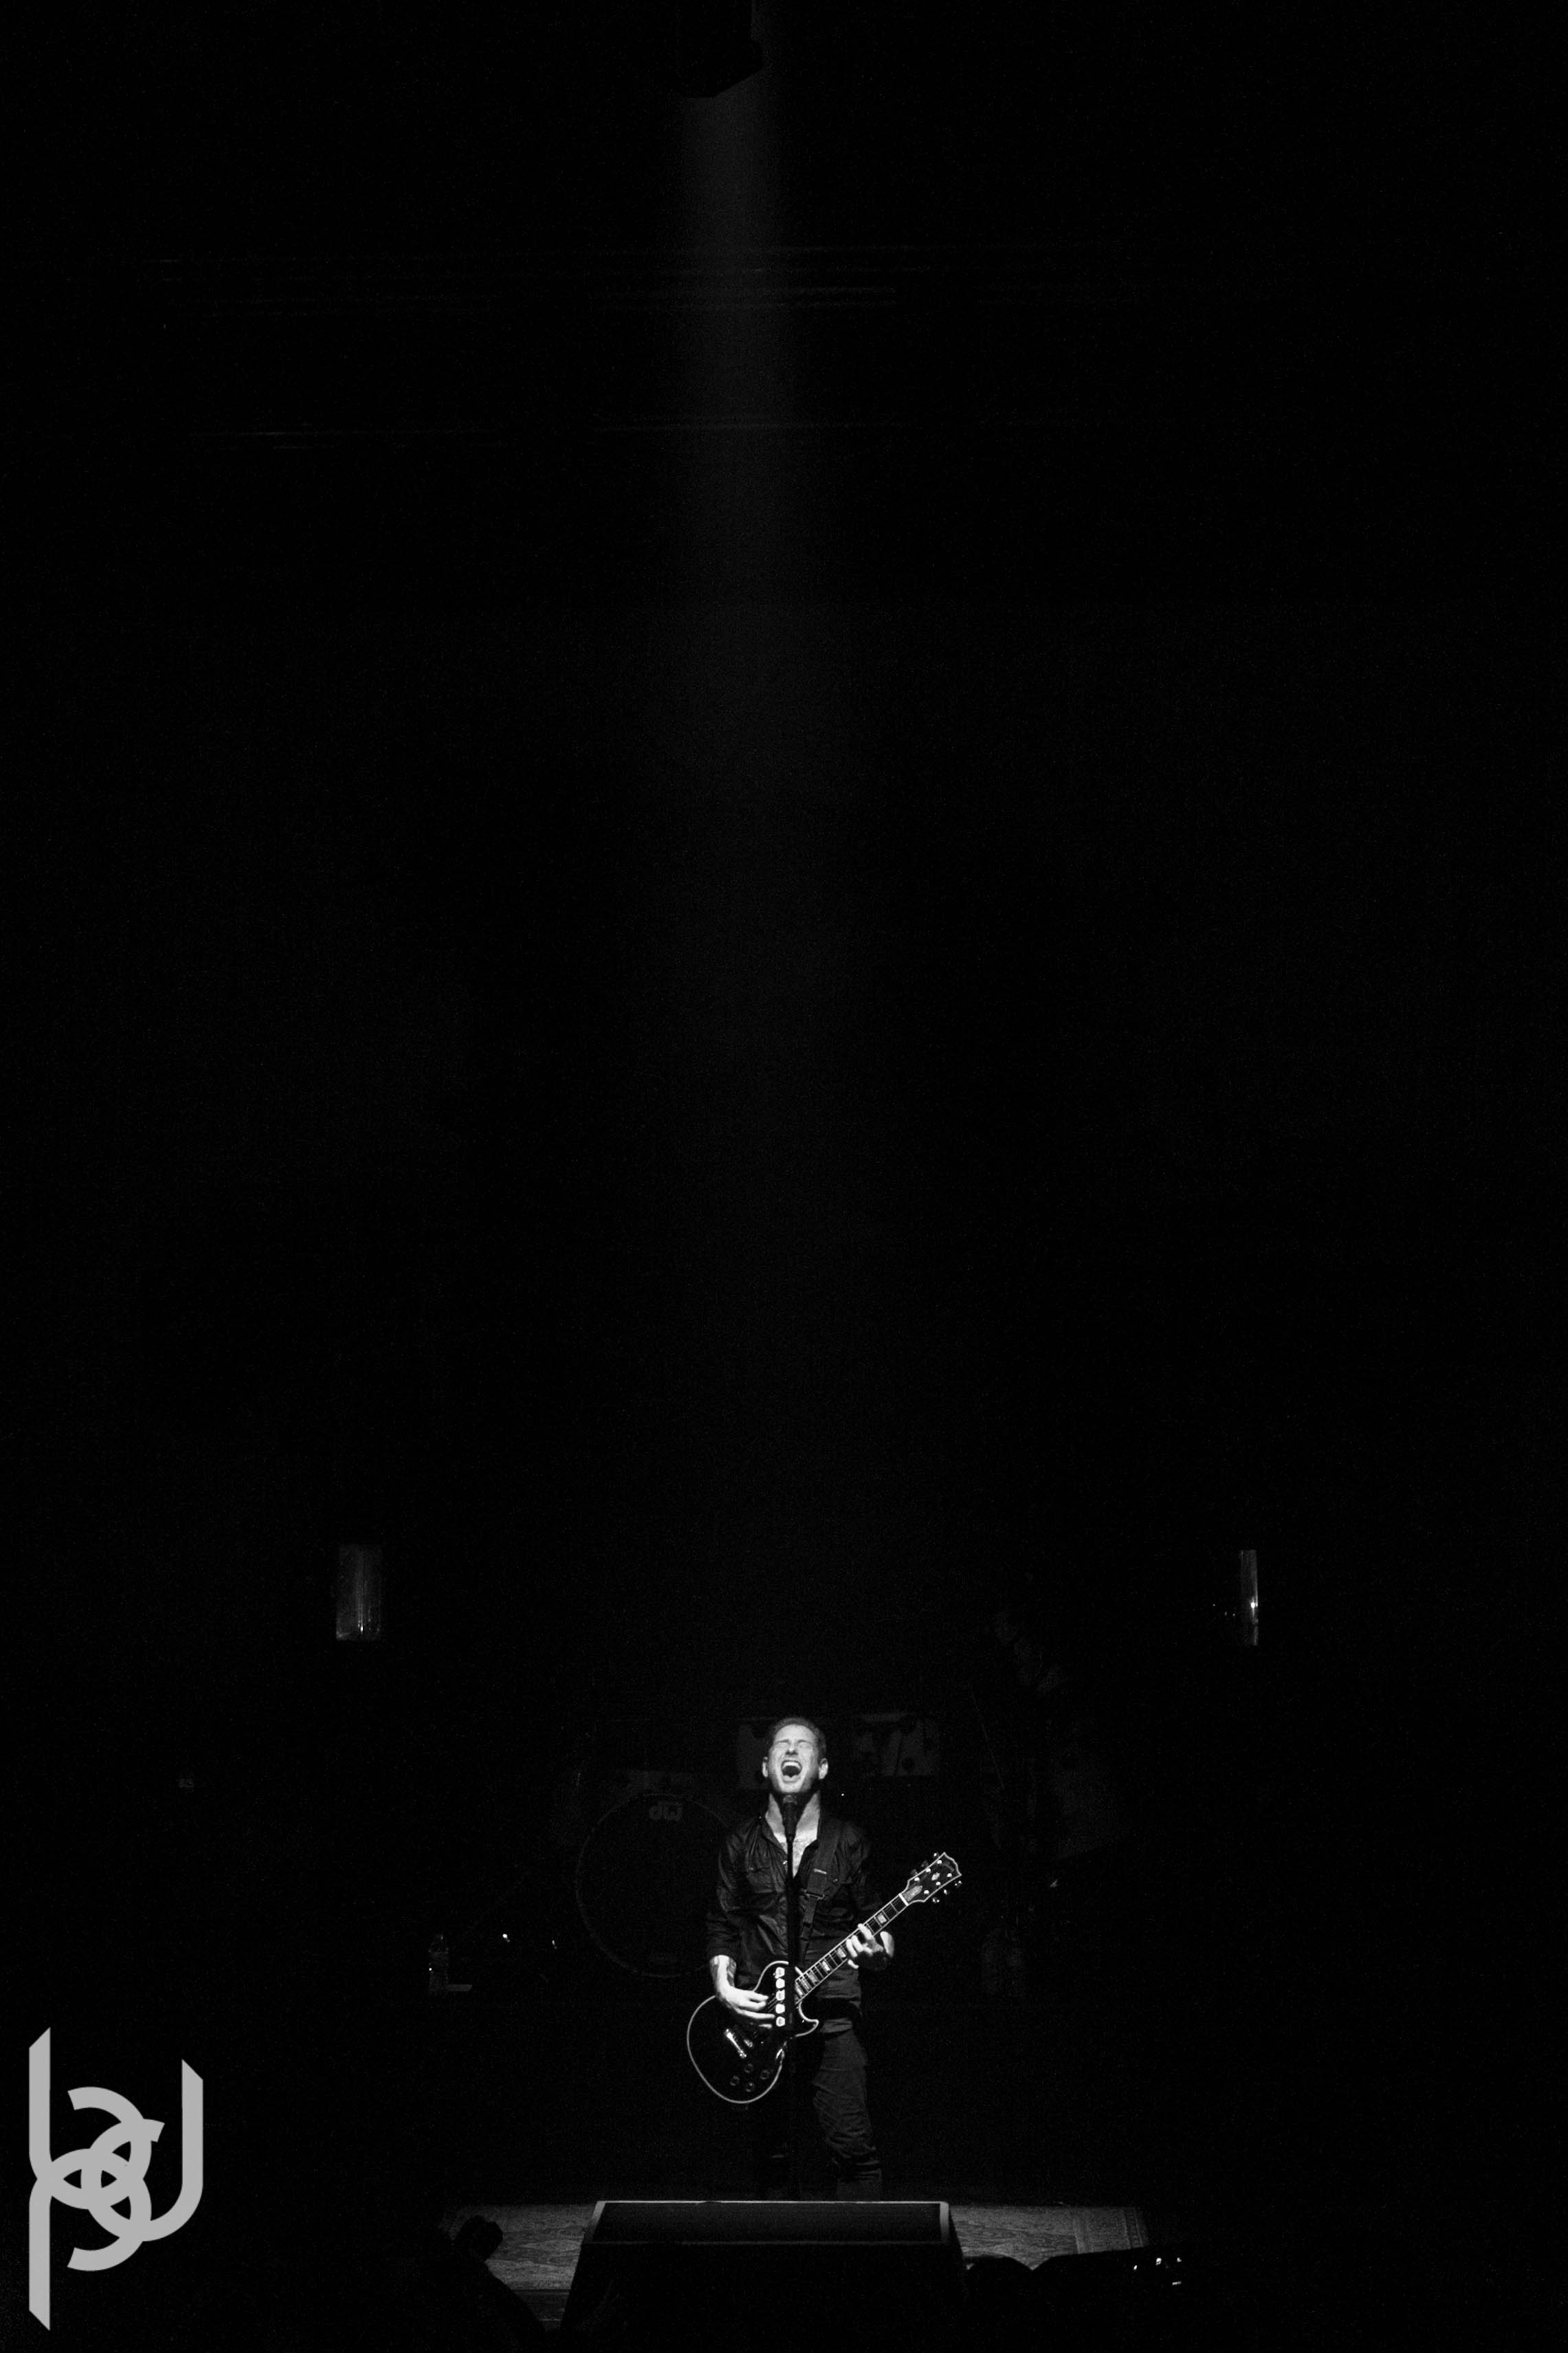 93x Presents Stone Sour at Skyway Theatre 013114 BDP (1).jpg